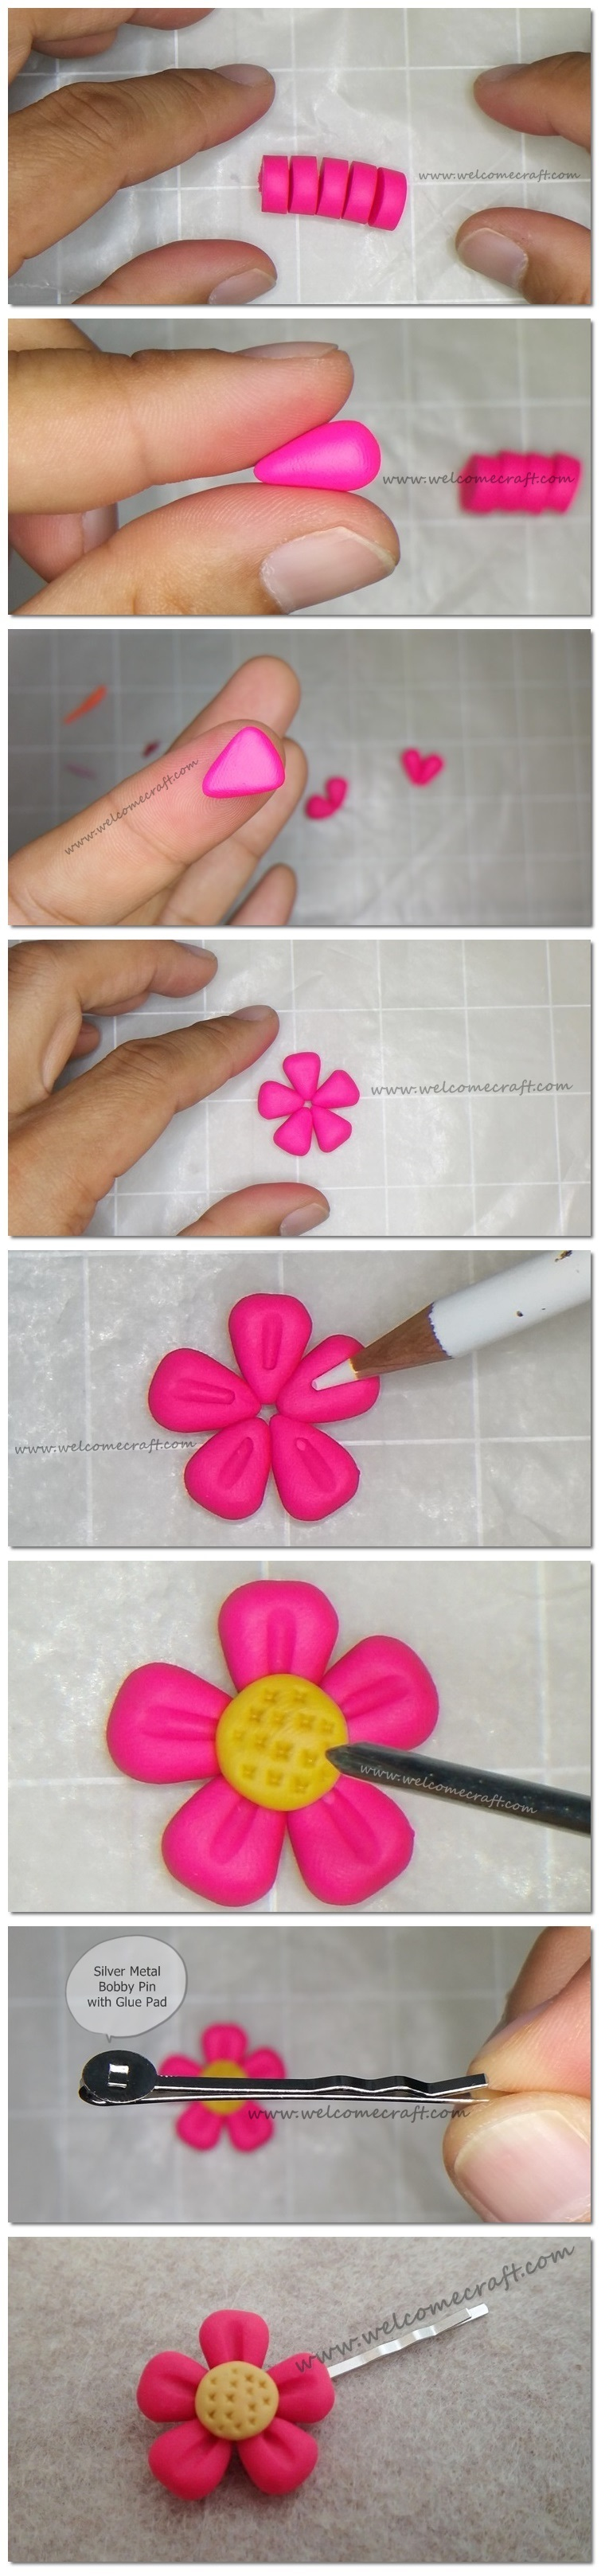 Polymer Clay Flower Pin Instruction